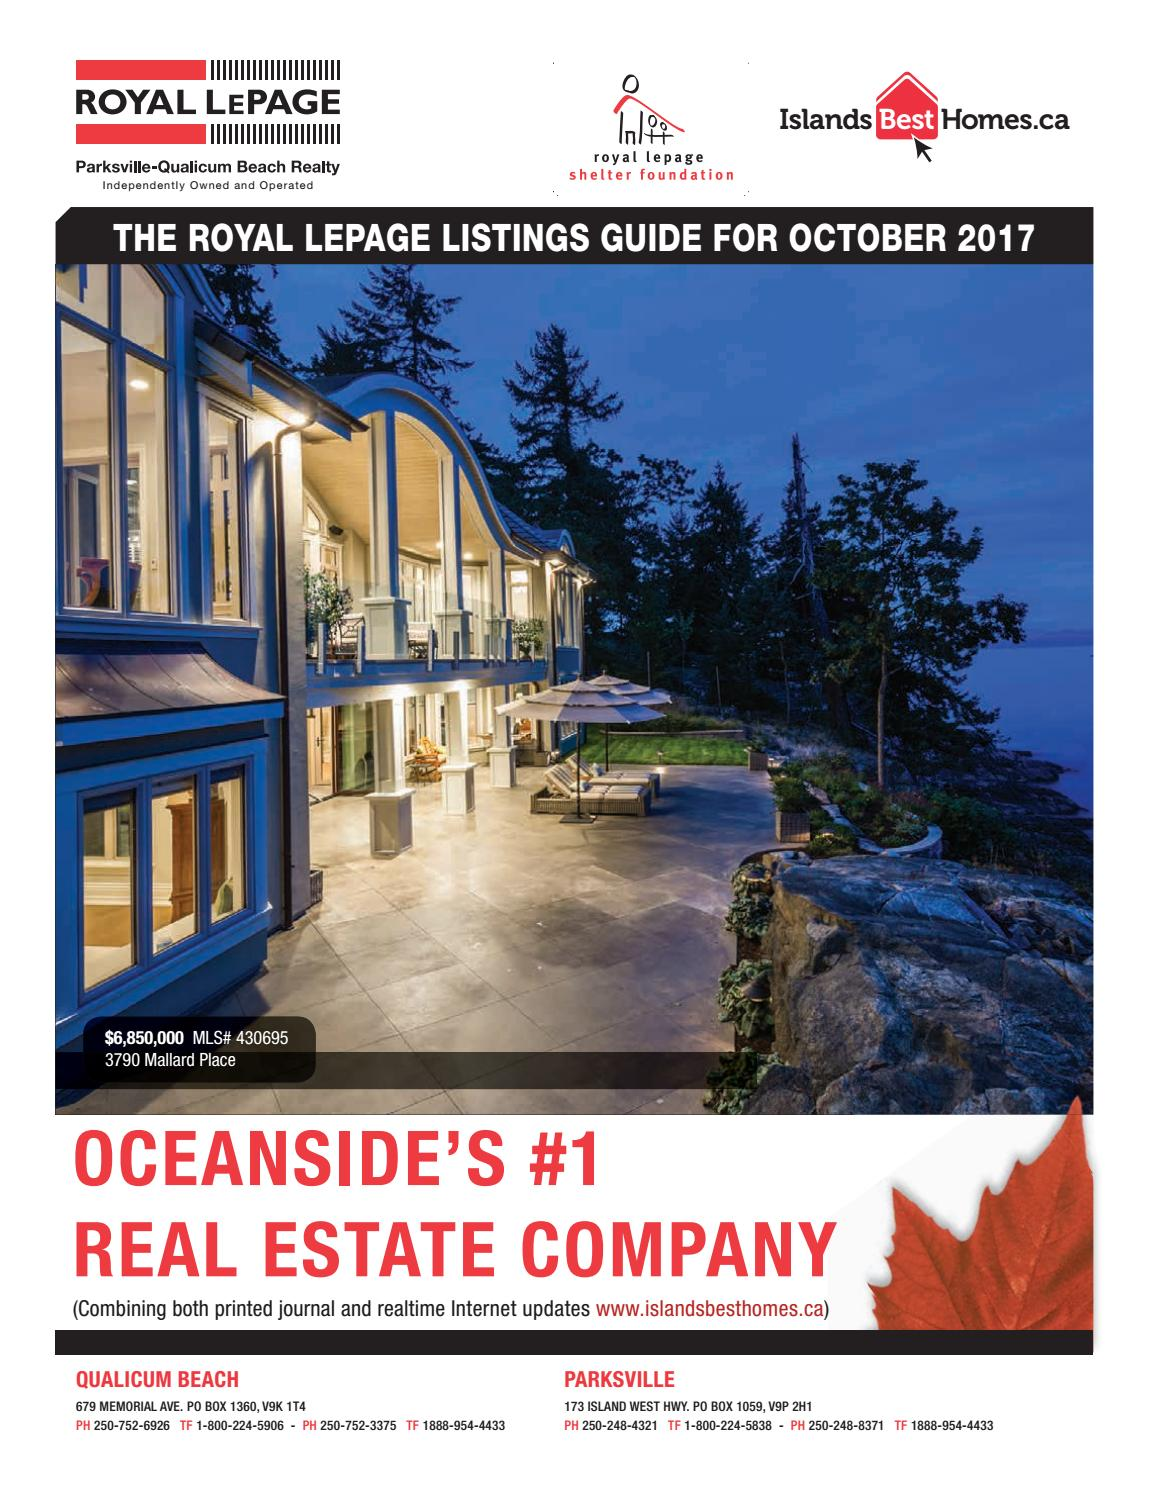 Islands best homes royal lepage parksville qualicum beach realty october 2017